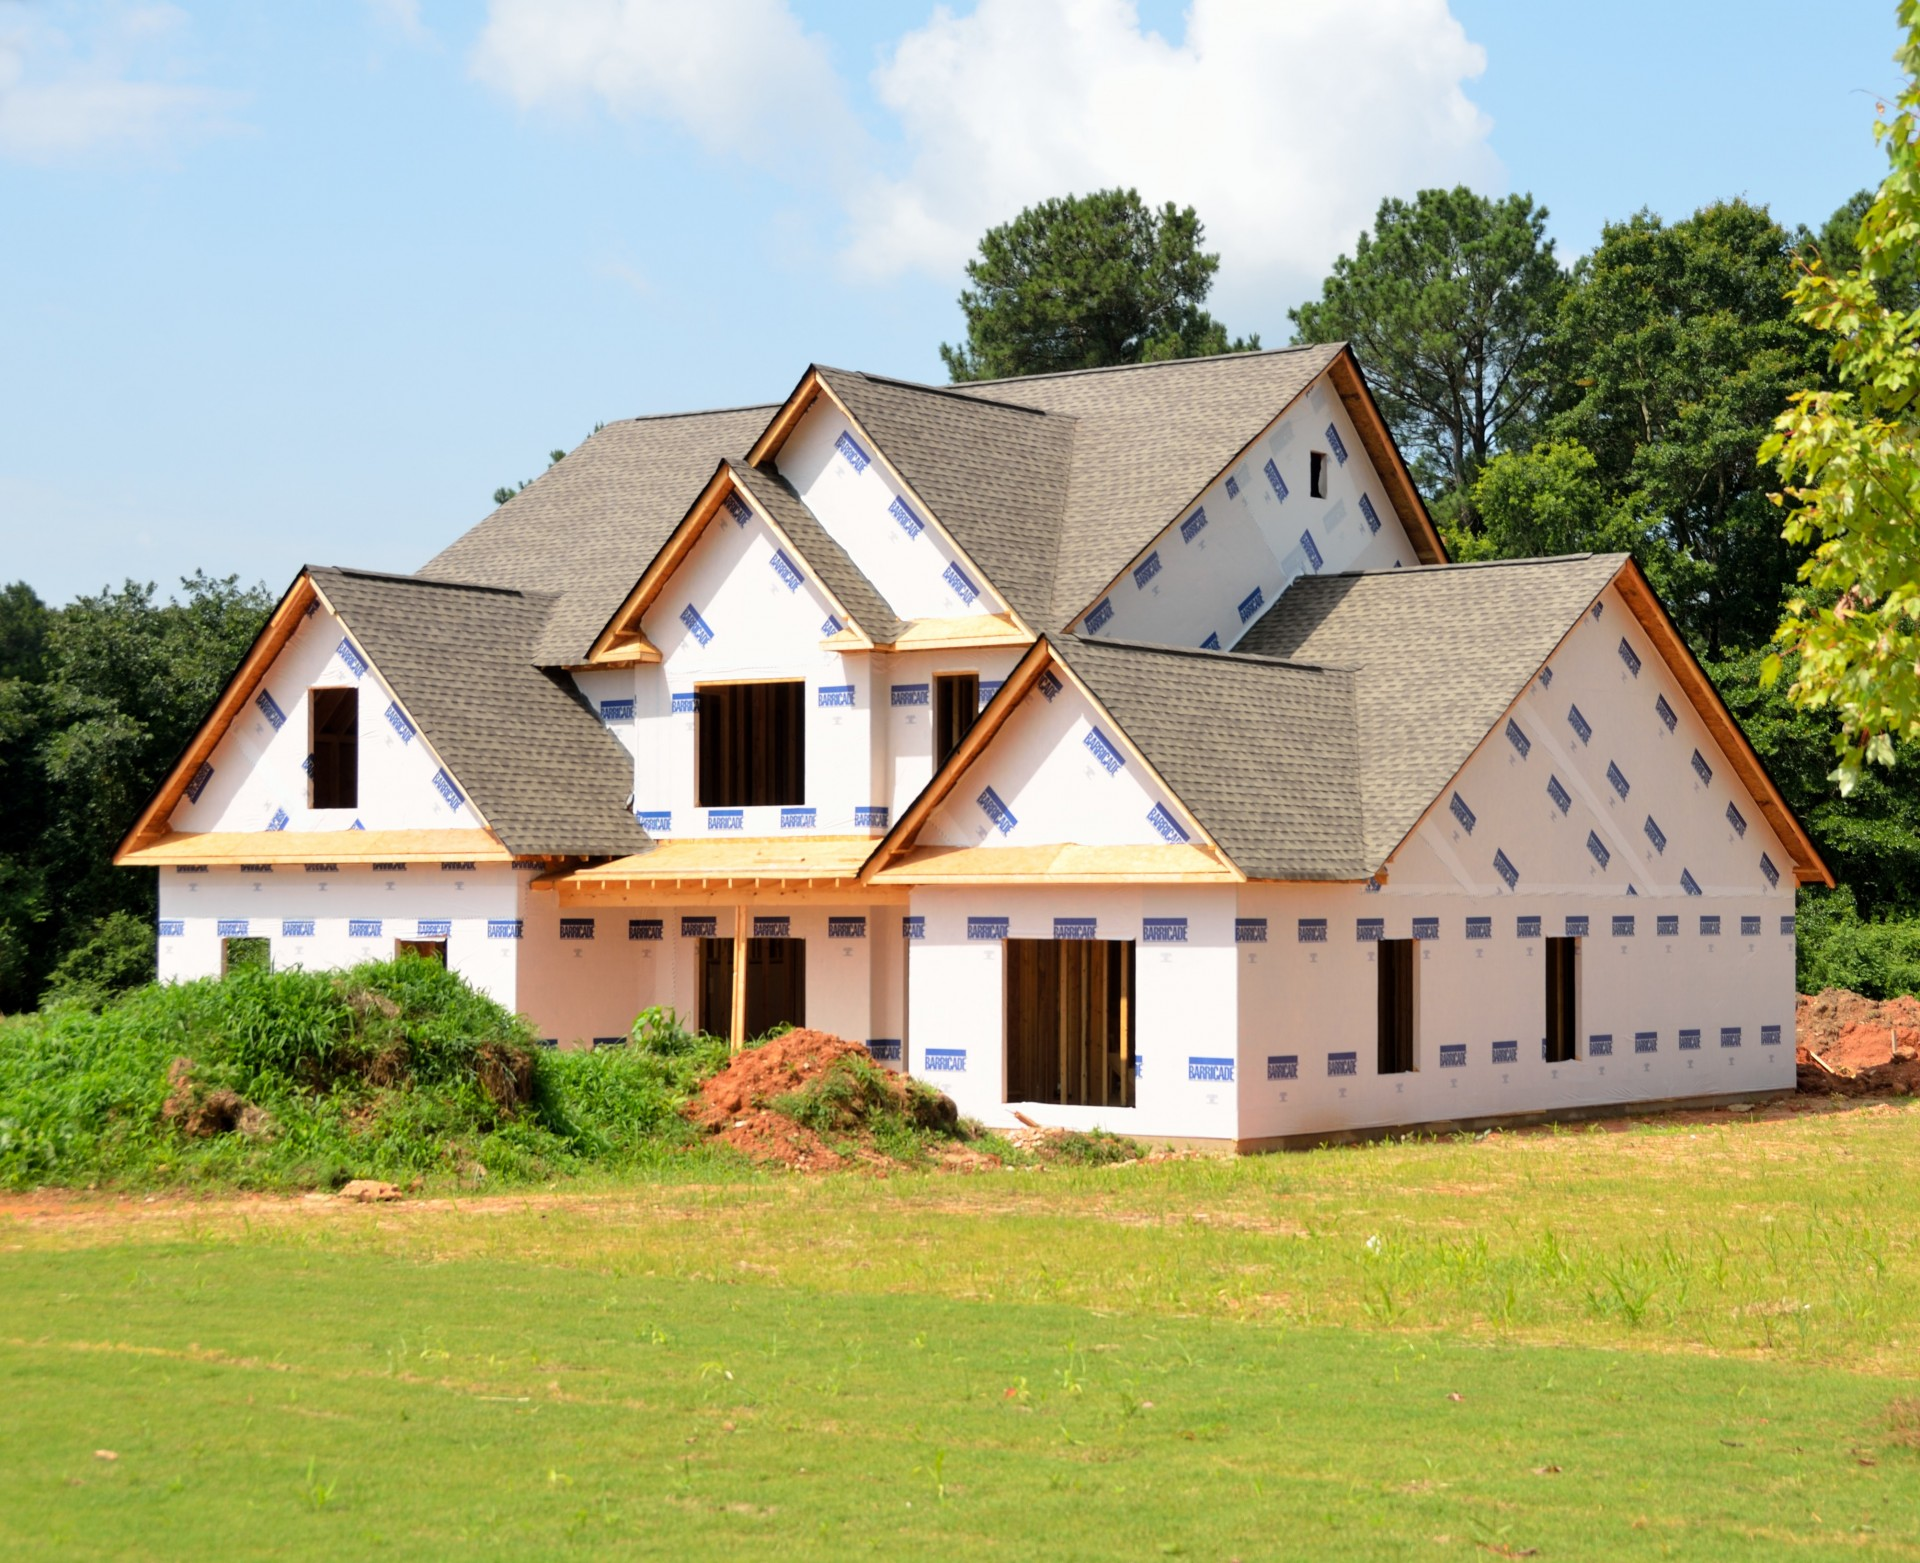 image - Qualities to Look for in a Home Construction Company